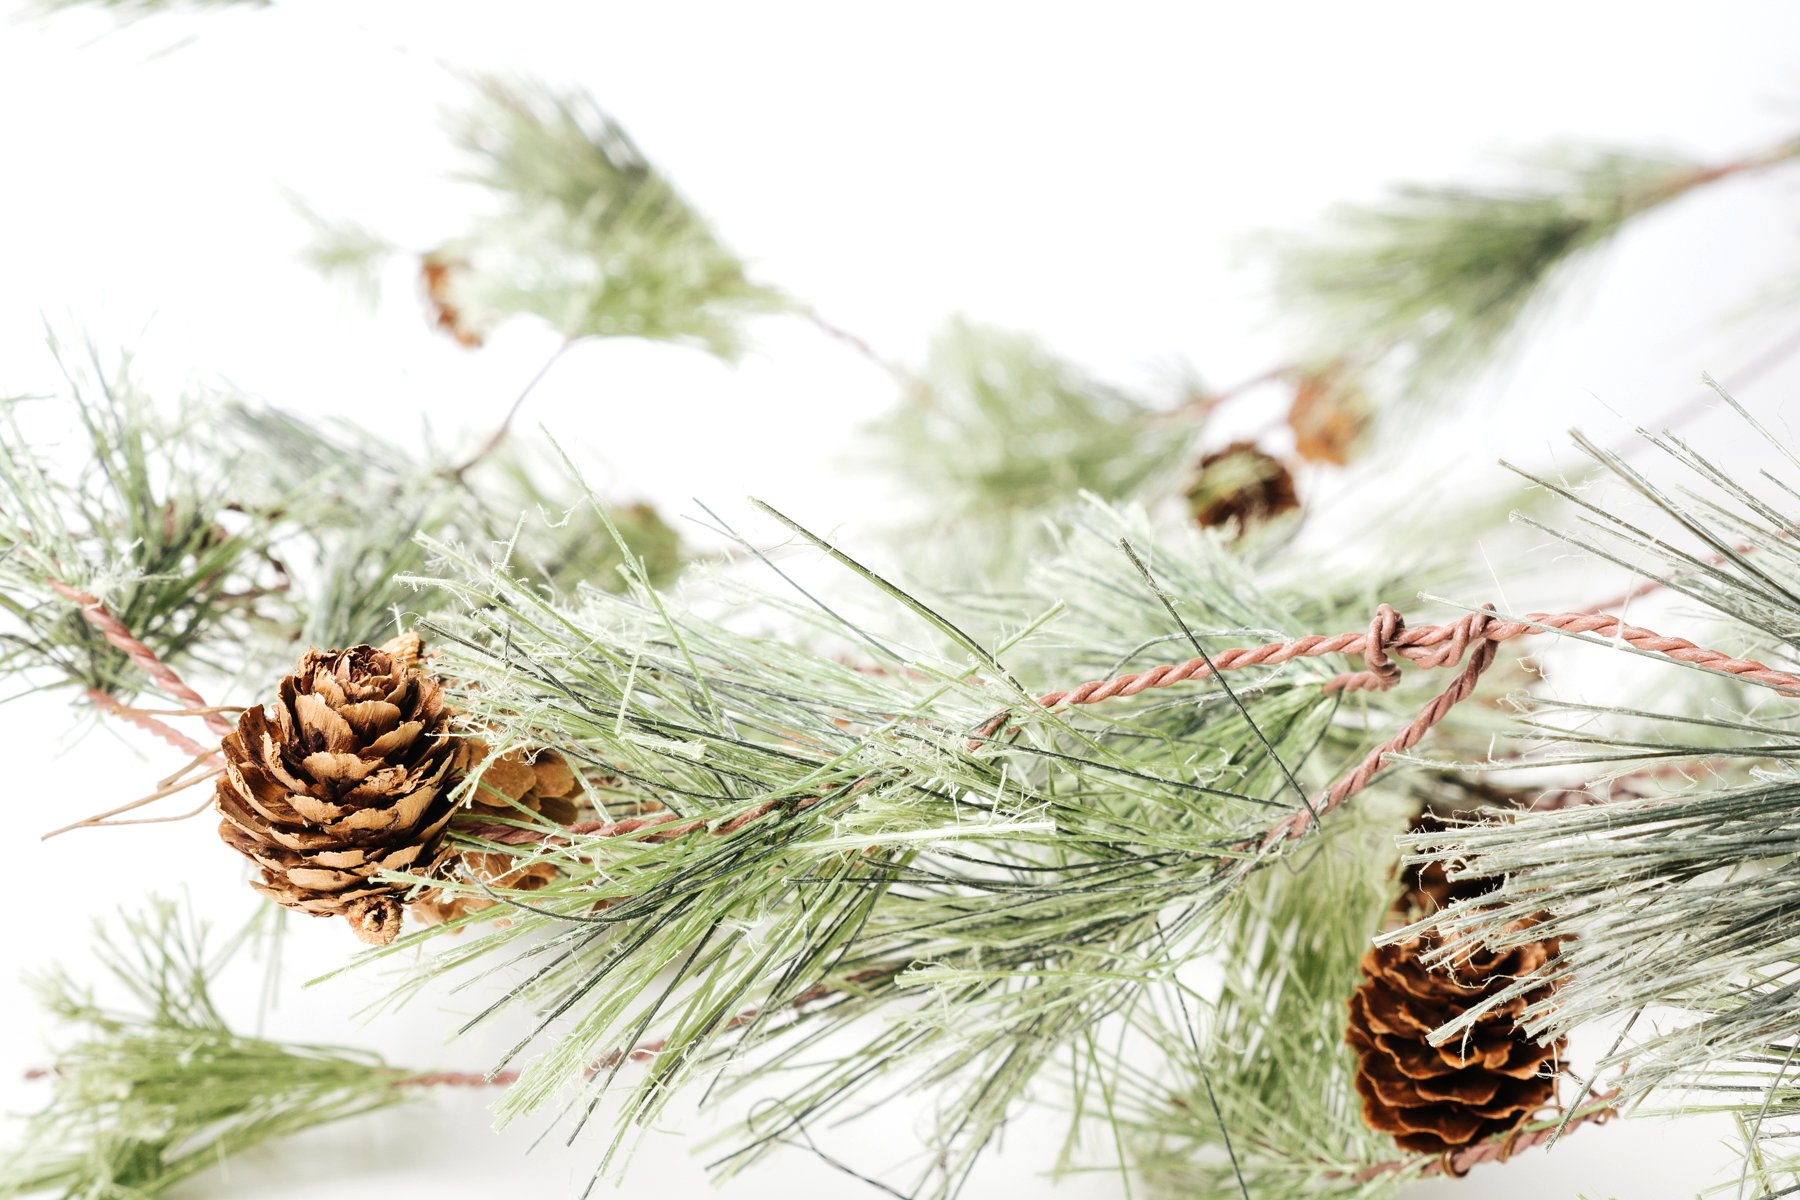 CraftMore Smokey Pine Garland - 6 Feet - Great Indoor and Outdoor Christmas Decor - Bring The Warmth of The Holidays to Your Home This Winter